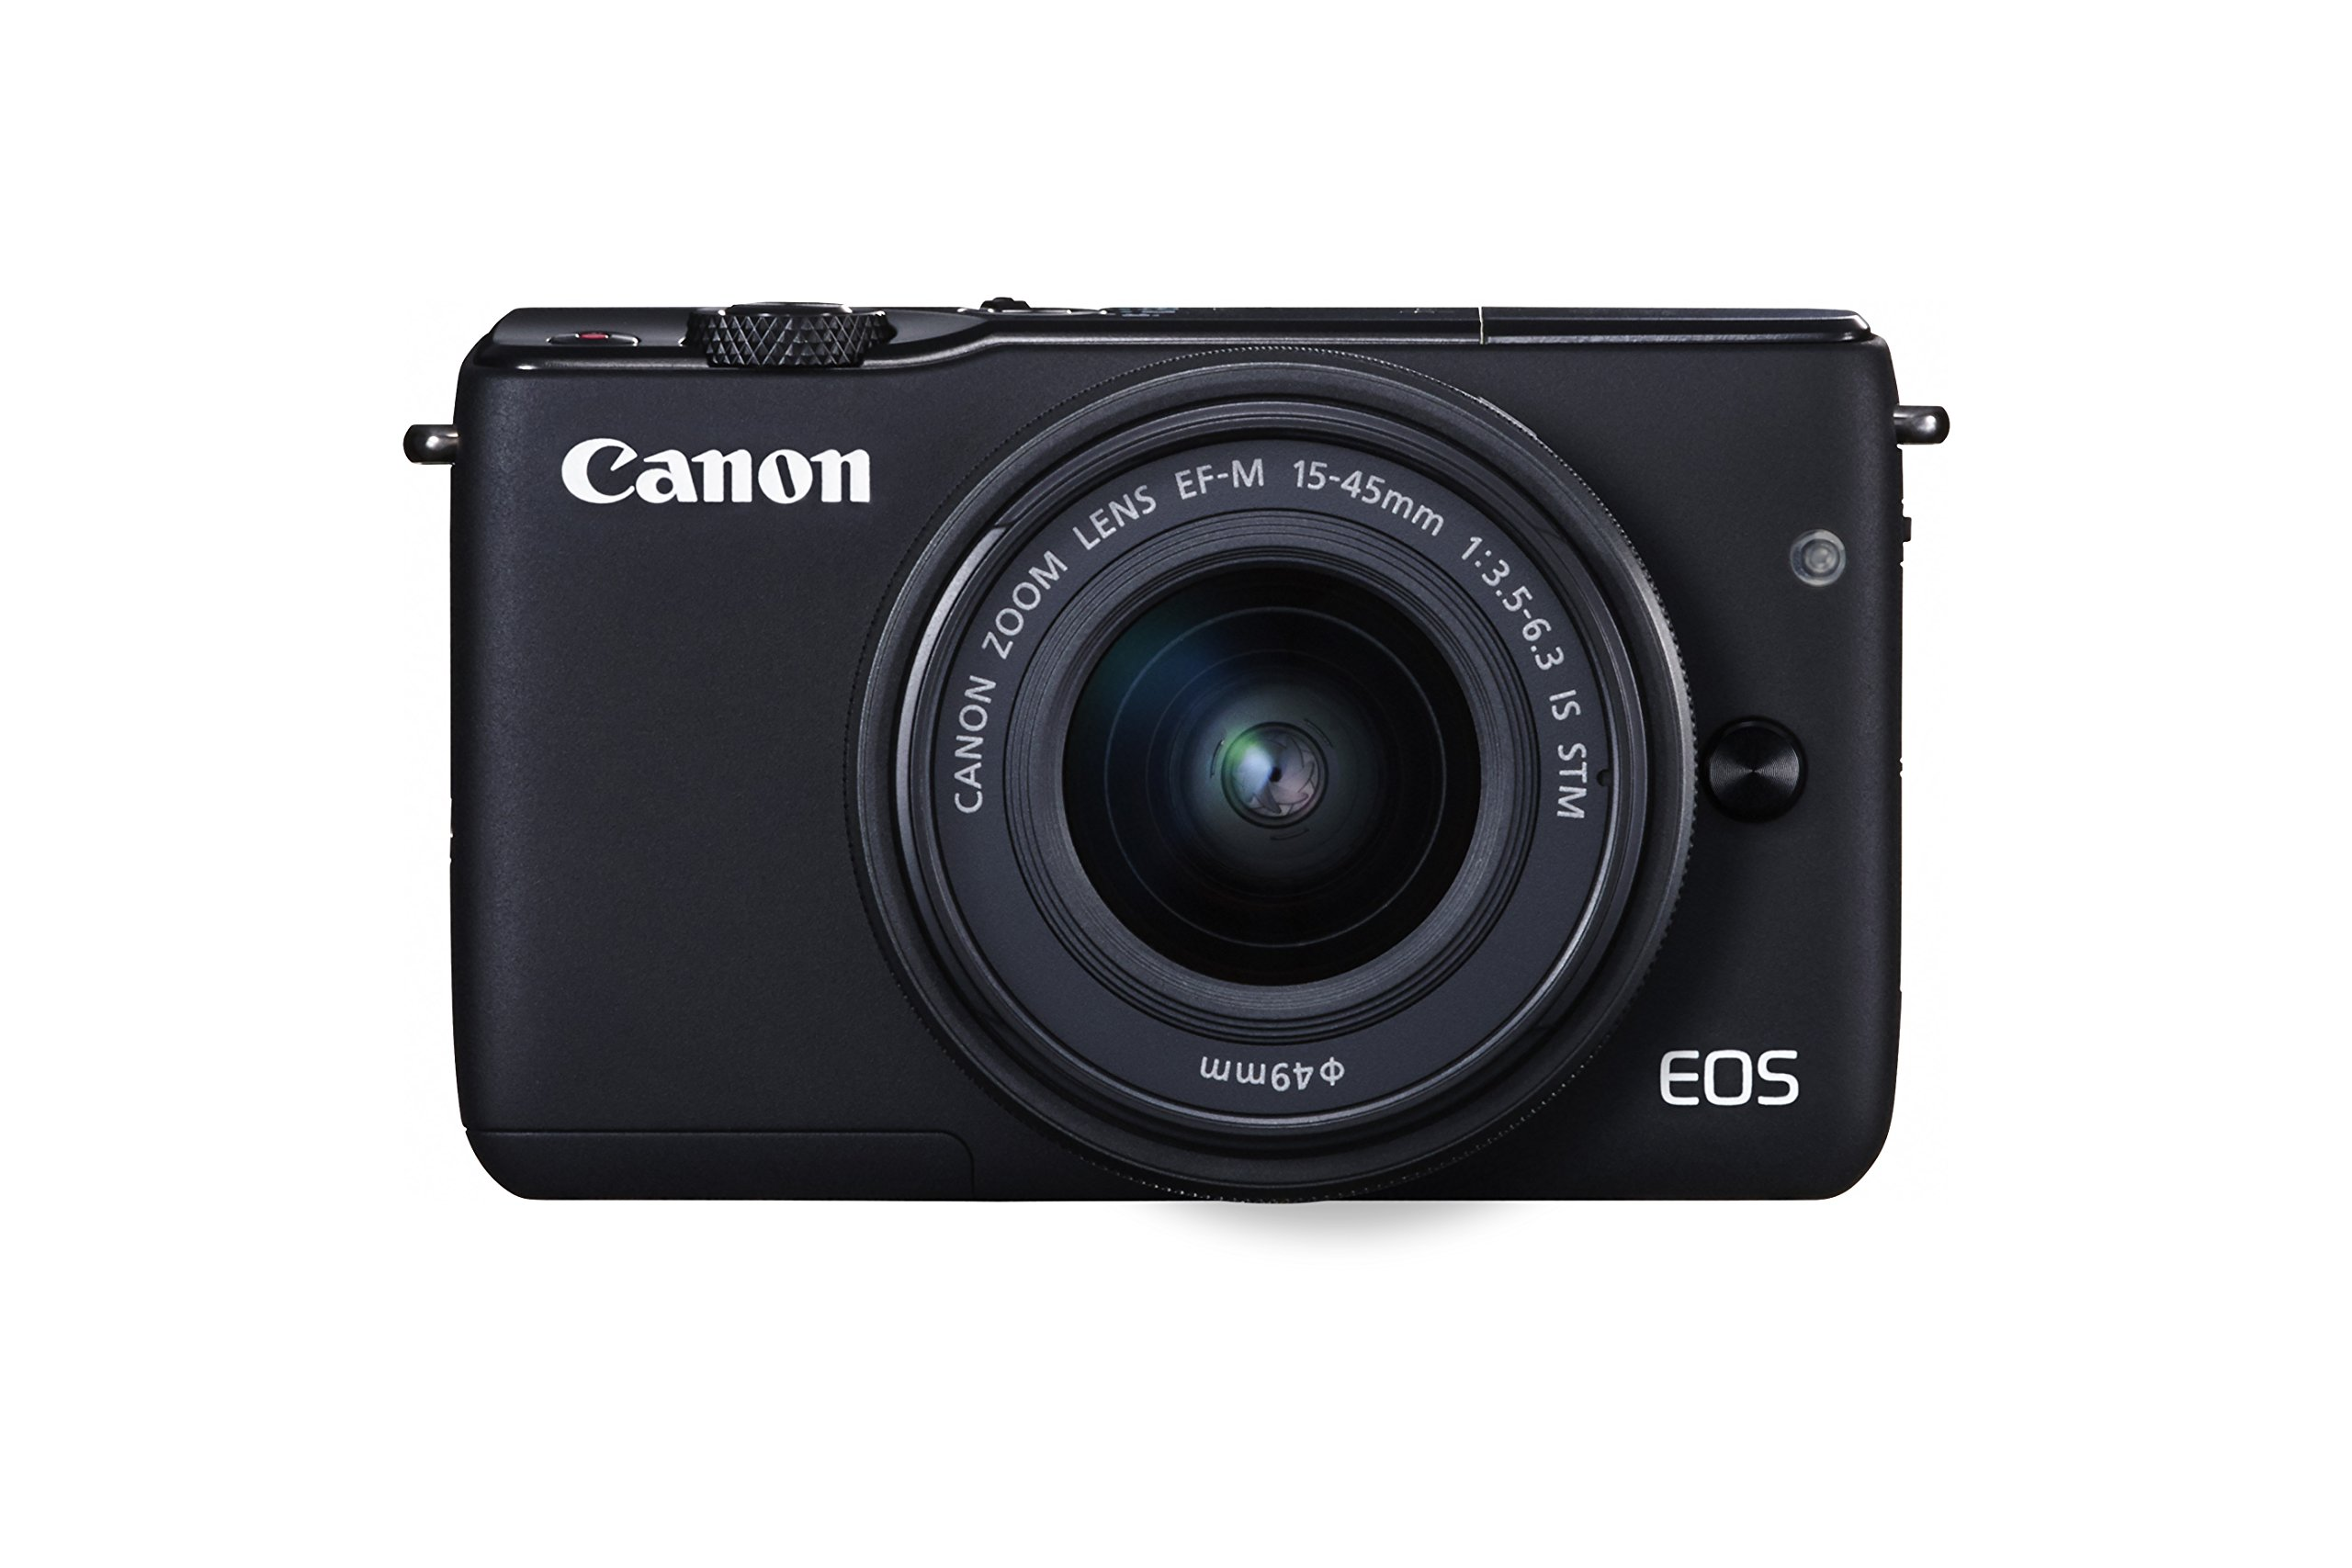 Canon EOS M10 Mirrorless Camera Kit with EF-M 15-45mm Image Stabilization STM Lens Kit by Canon